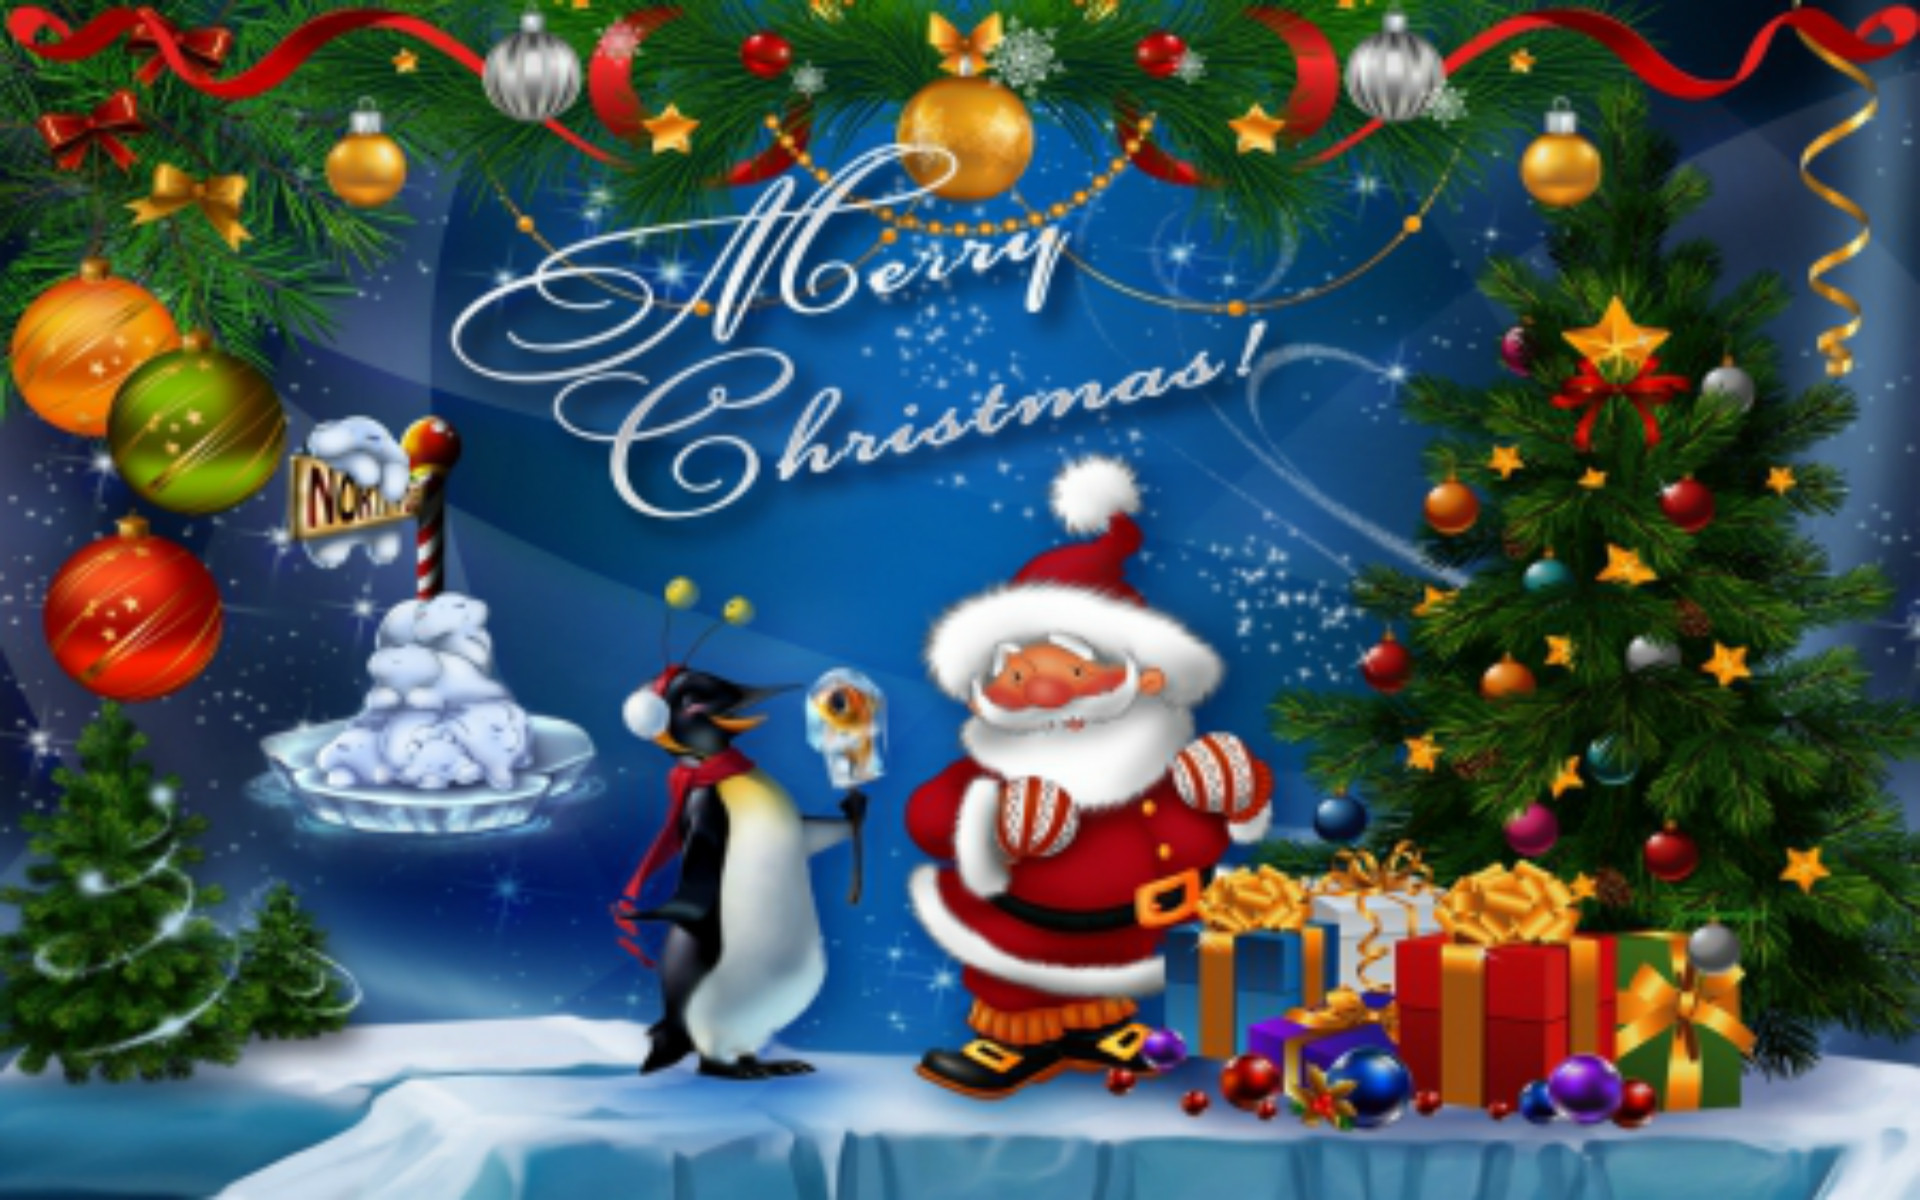 1920x1200 christmas background images christmas desktop wallpaper christmas tree  wallpaper free christmas wallpaper backgrounds merry christmas wallpaper  2016-11-07